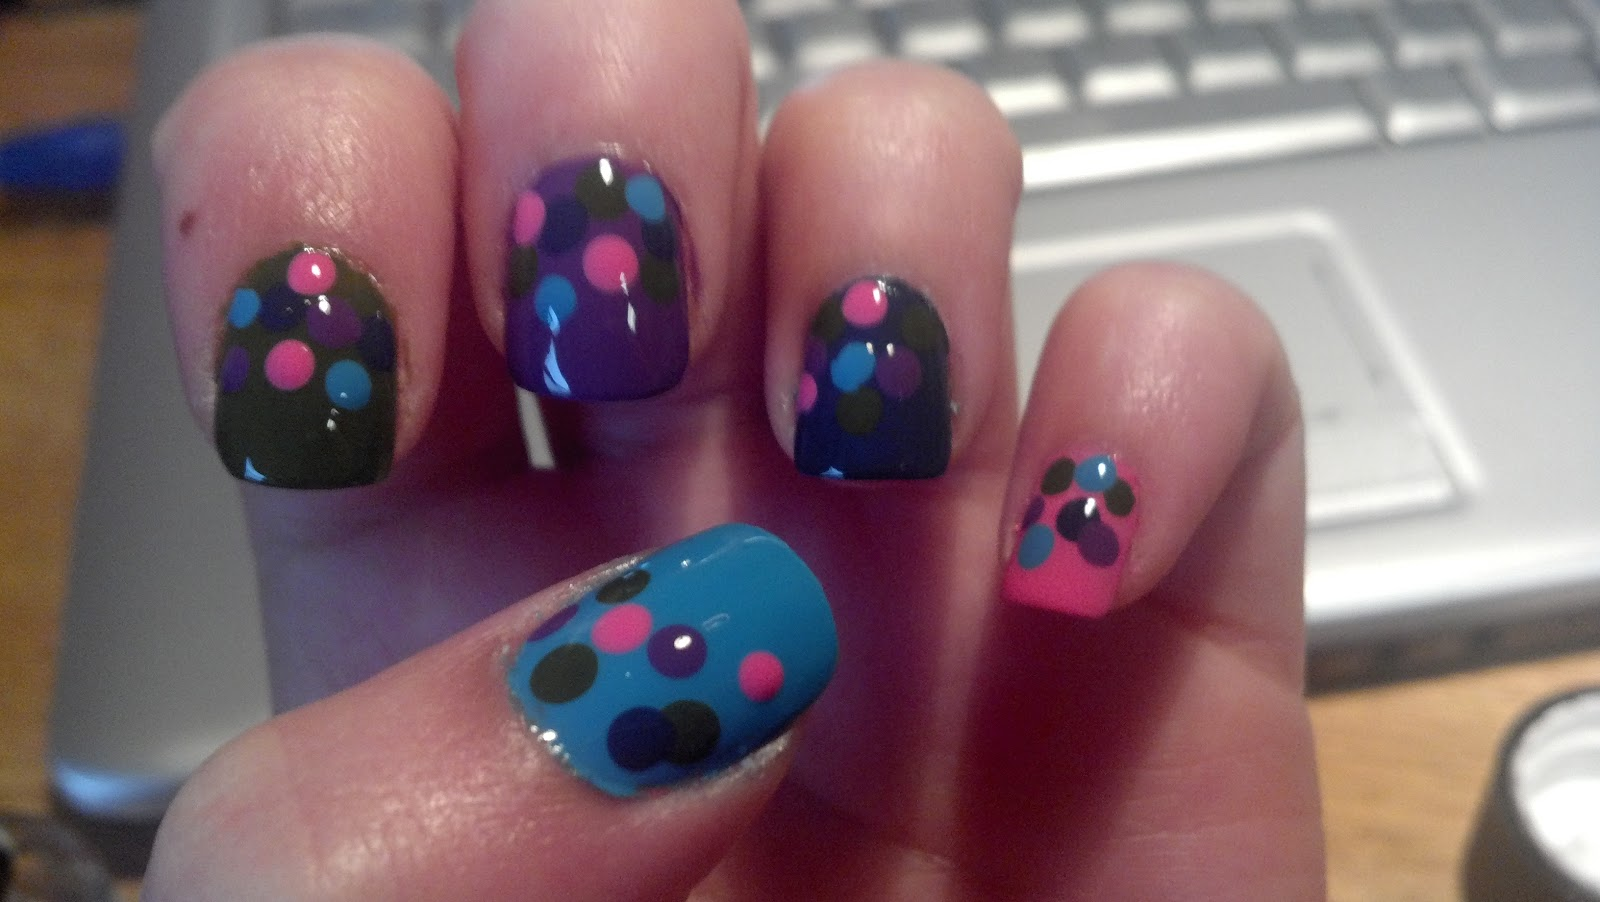 Nikki's Nail Files: Inspired by Pinterest: Pretty Polka Dotties